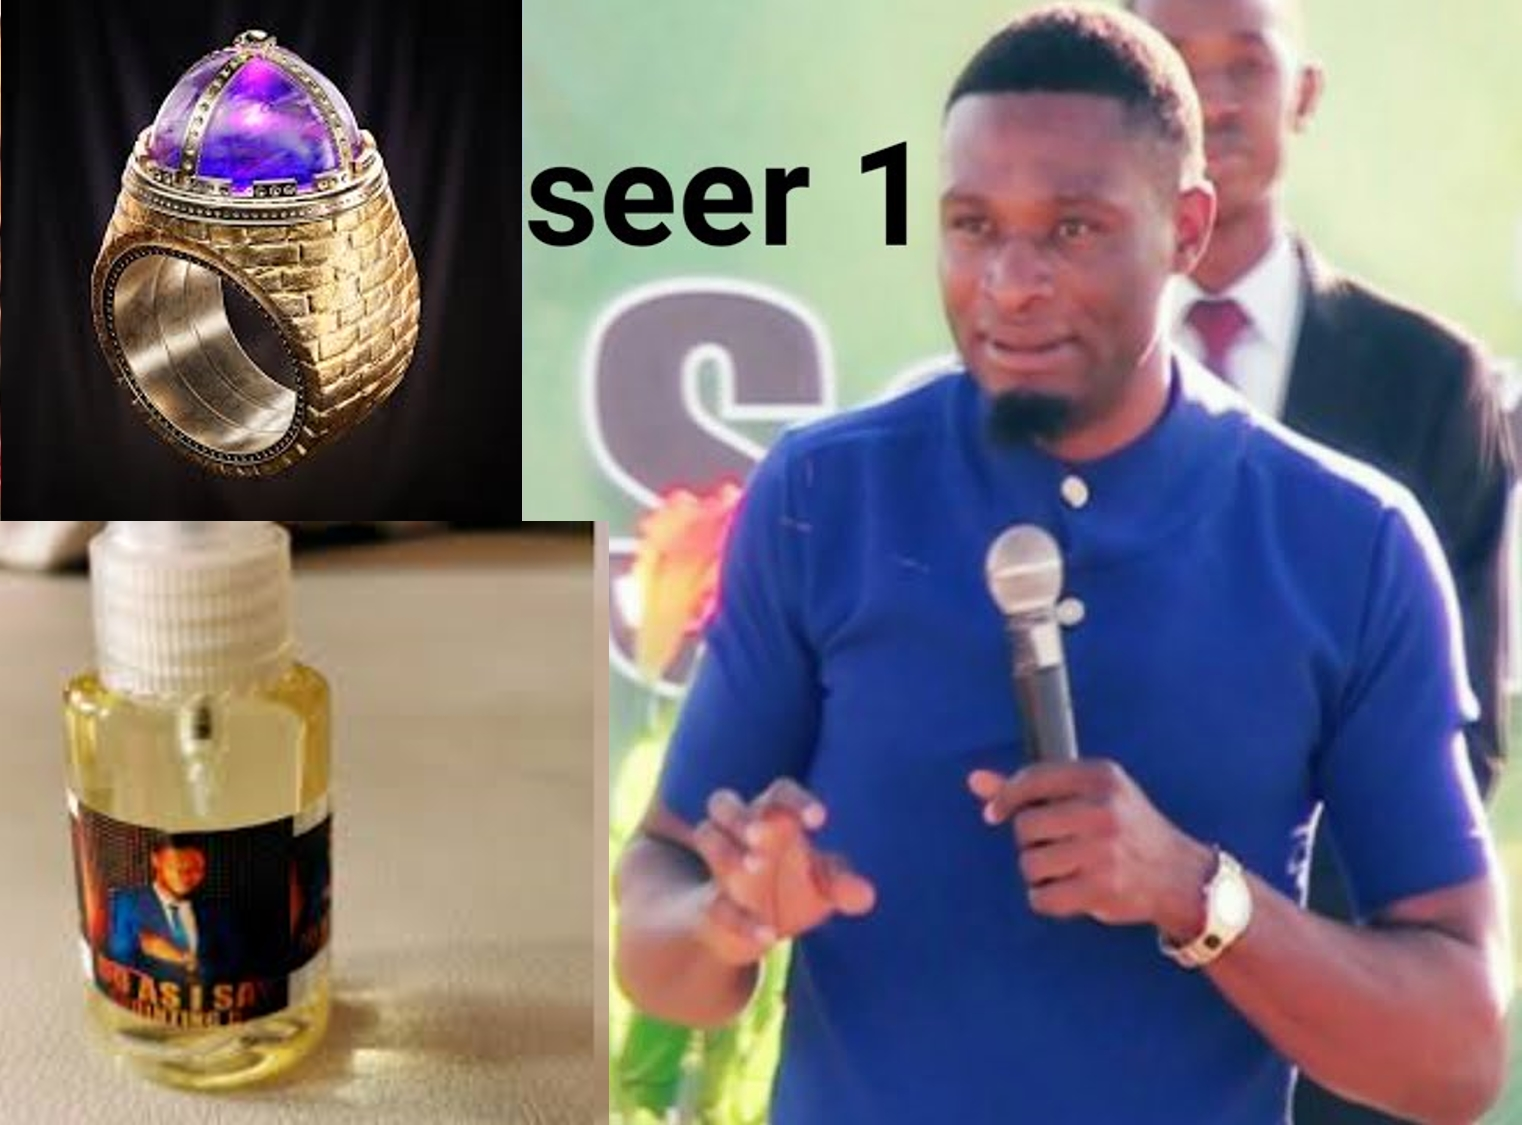 Seer 1 sells 'do as I say' magic rings & oil to followers